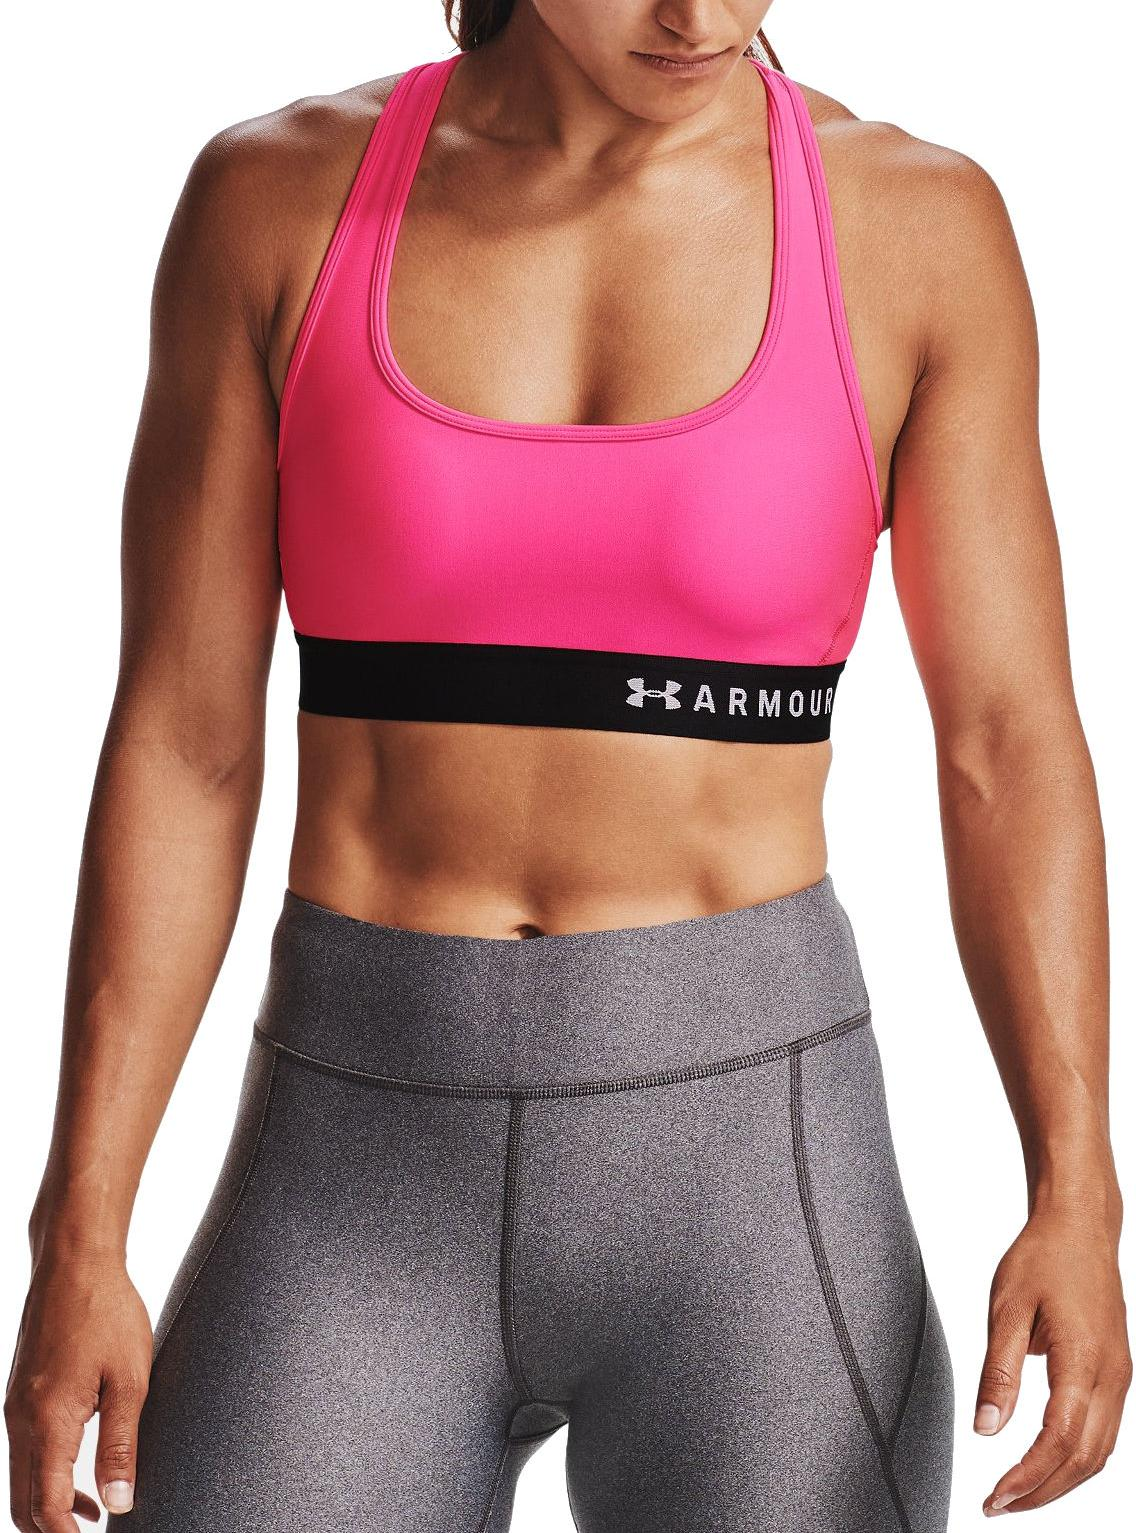 BH Under Armour Armour Mid Crossback Bra